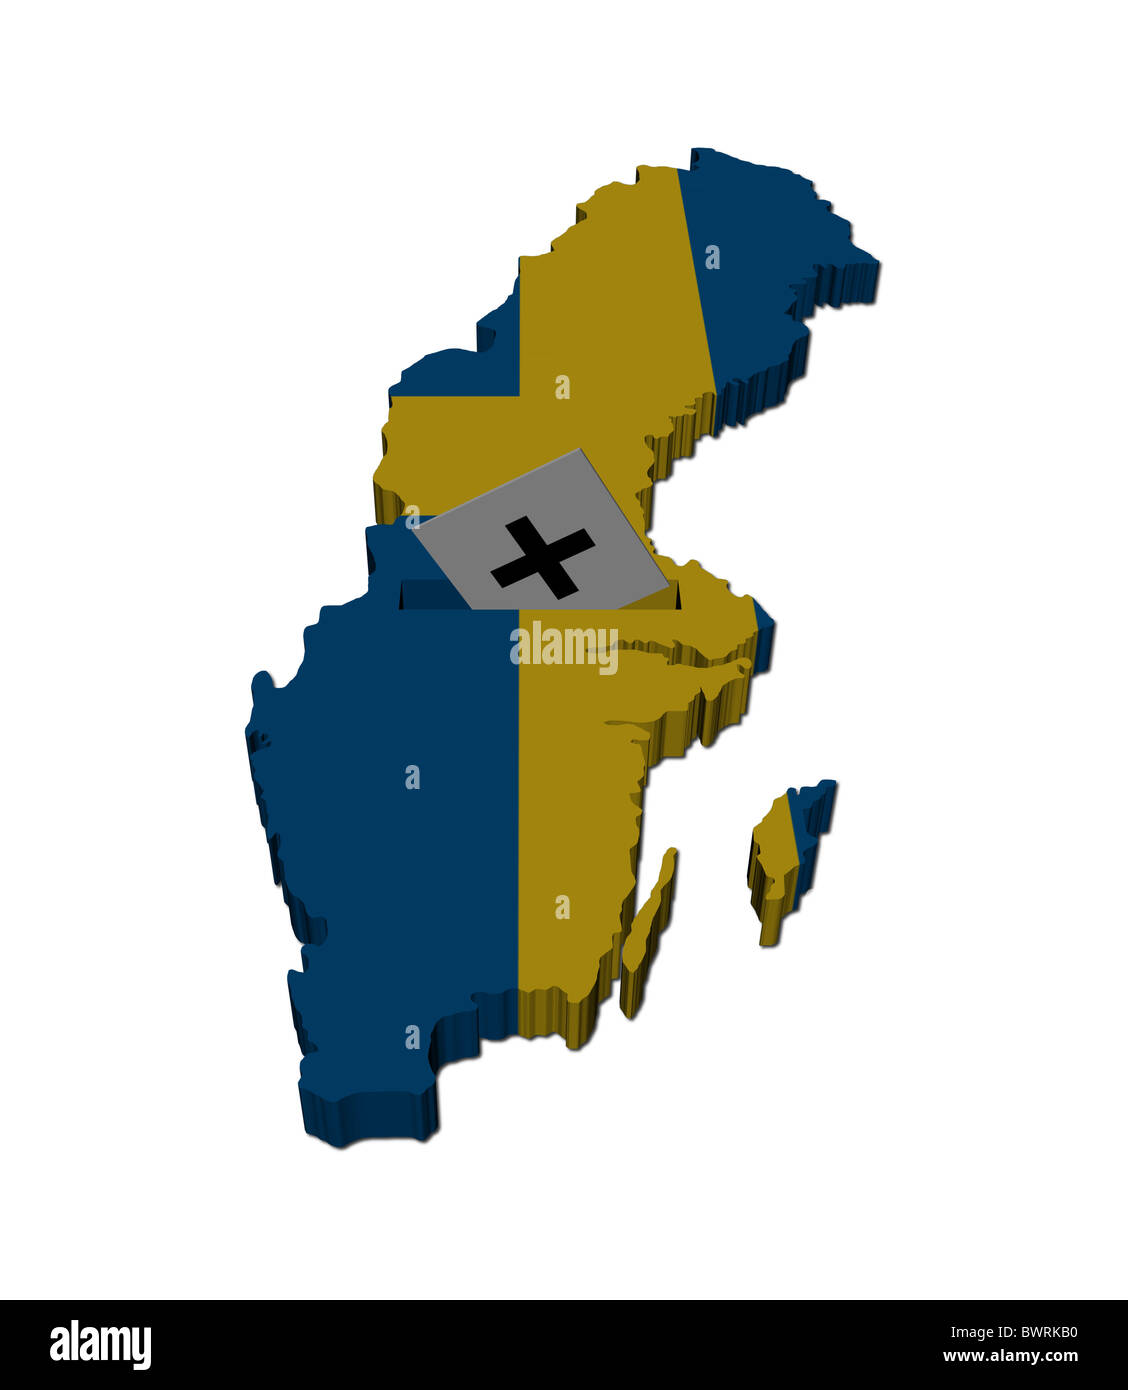 Sweden Election Map With Ballot Paper Illustration Stock Photo - Sweden election map